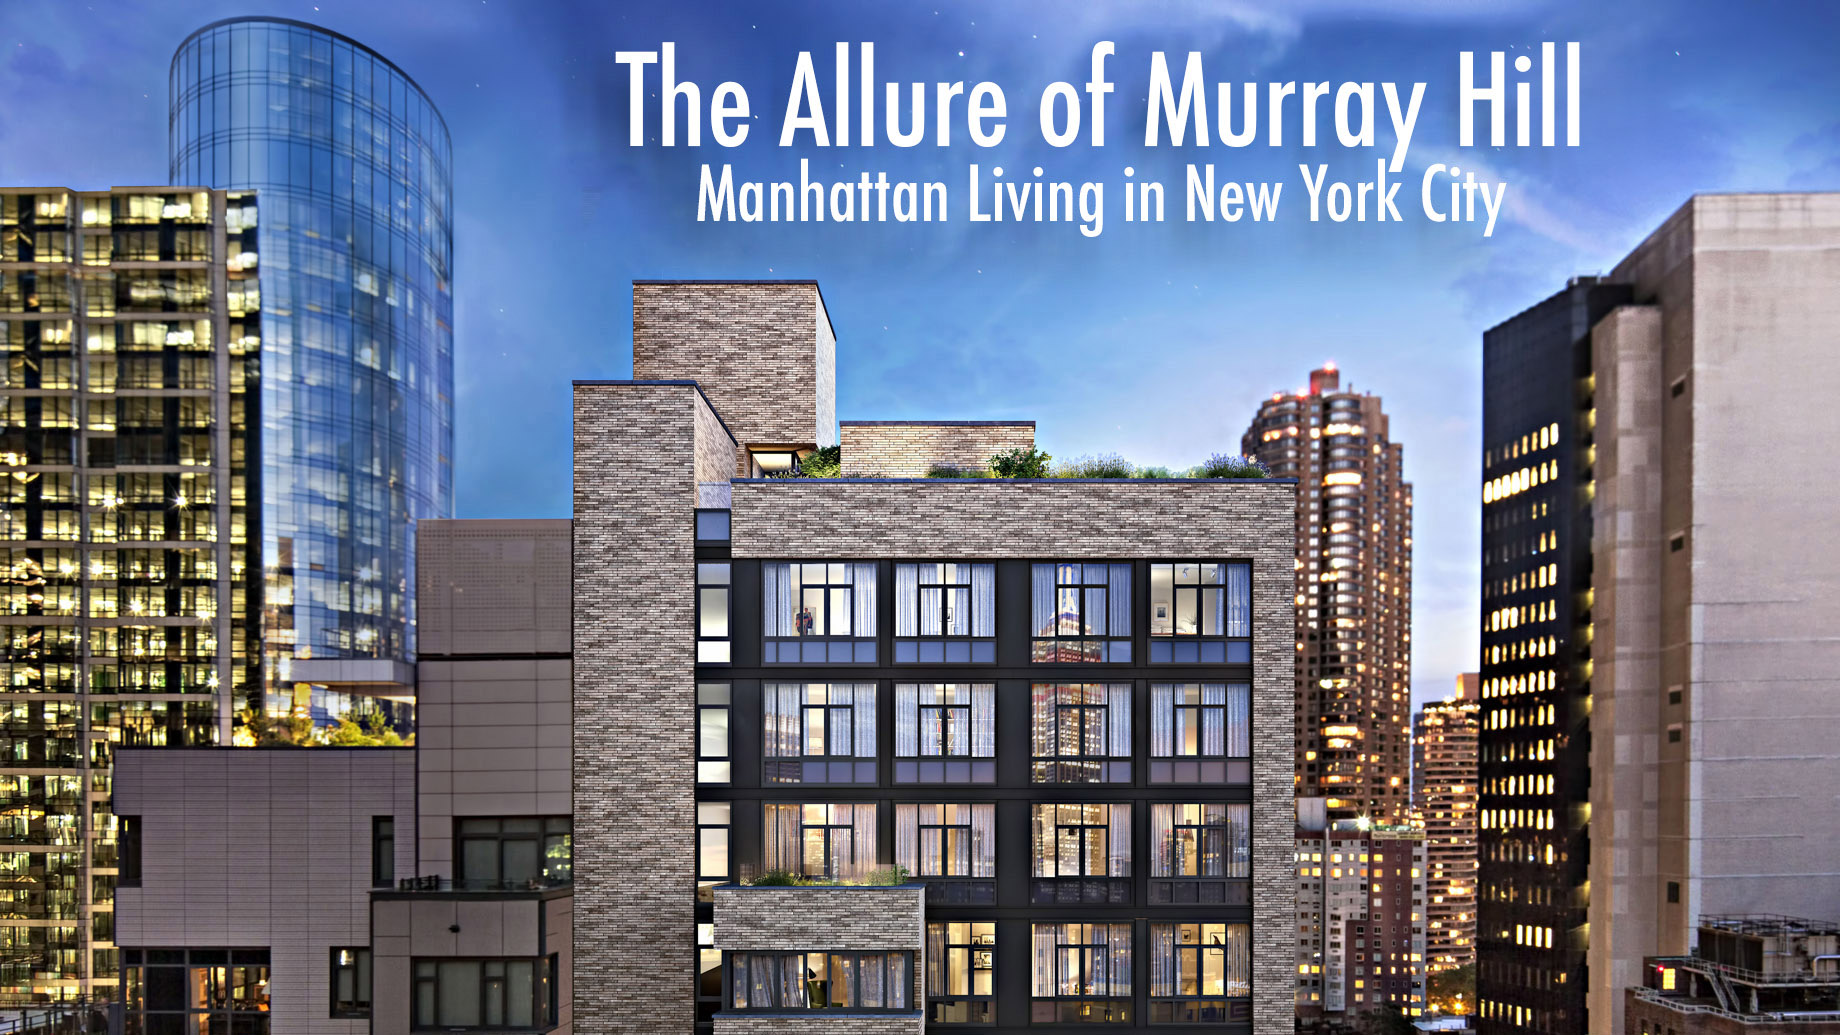 The Allure of Murray Hill - Manhattan Living in New York City